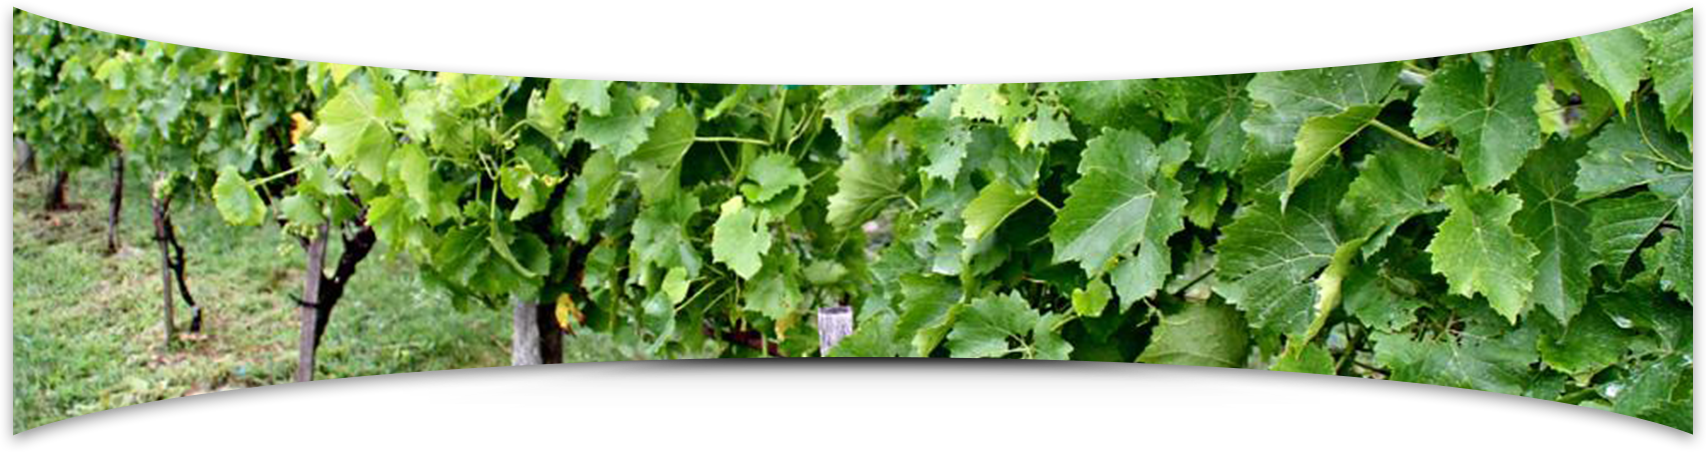 Banner Elk Winery & Villa Winery Photo Gallery